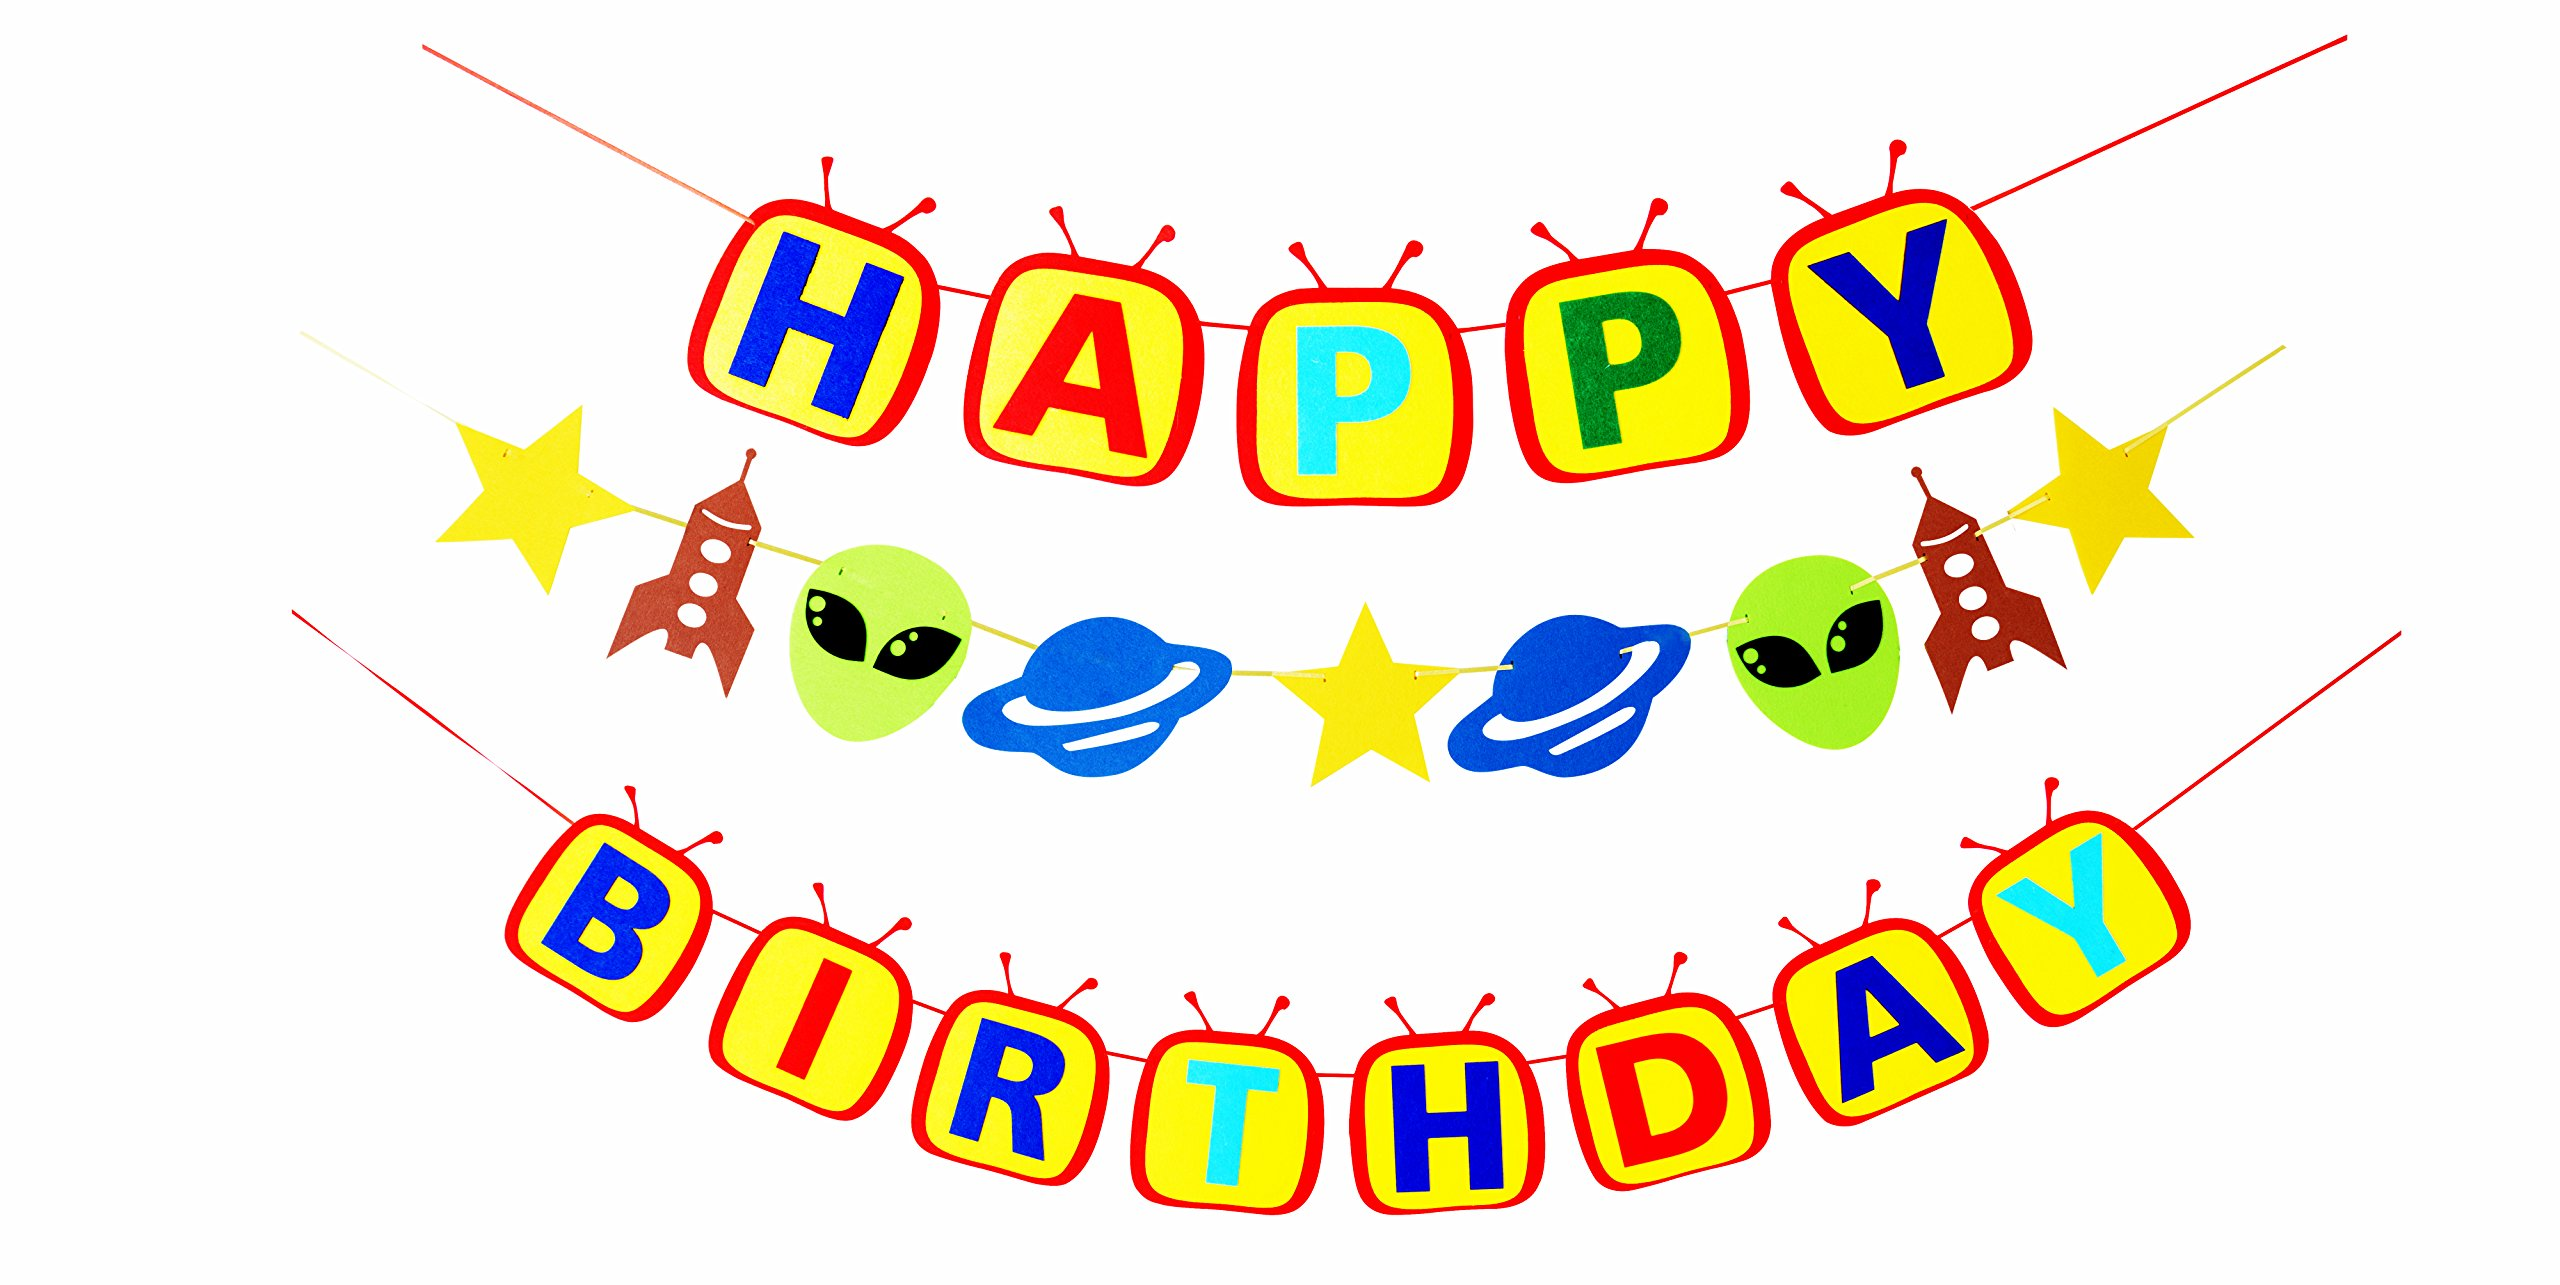 Outer Space Astronaut Party Supplies-1 Happy Birthday Banner, 1 Spaceship Rocket Shutter Alien Garland, Solar System Decorations and Favors for kids 1st 2nd 3rd 4th 5th 6th Bday Decor